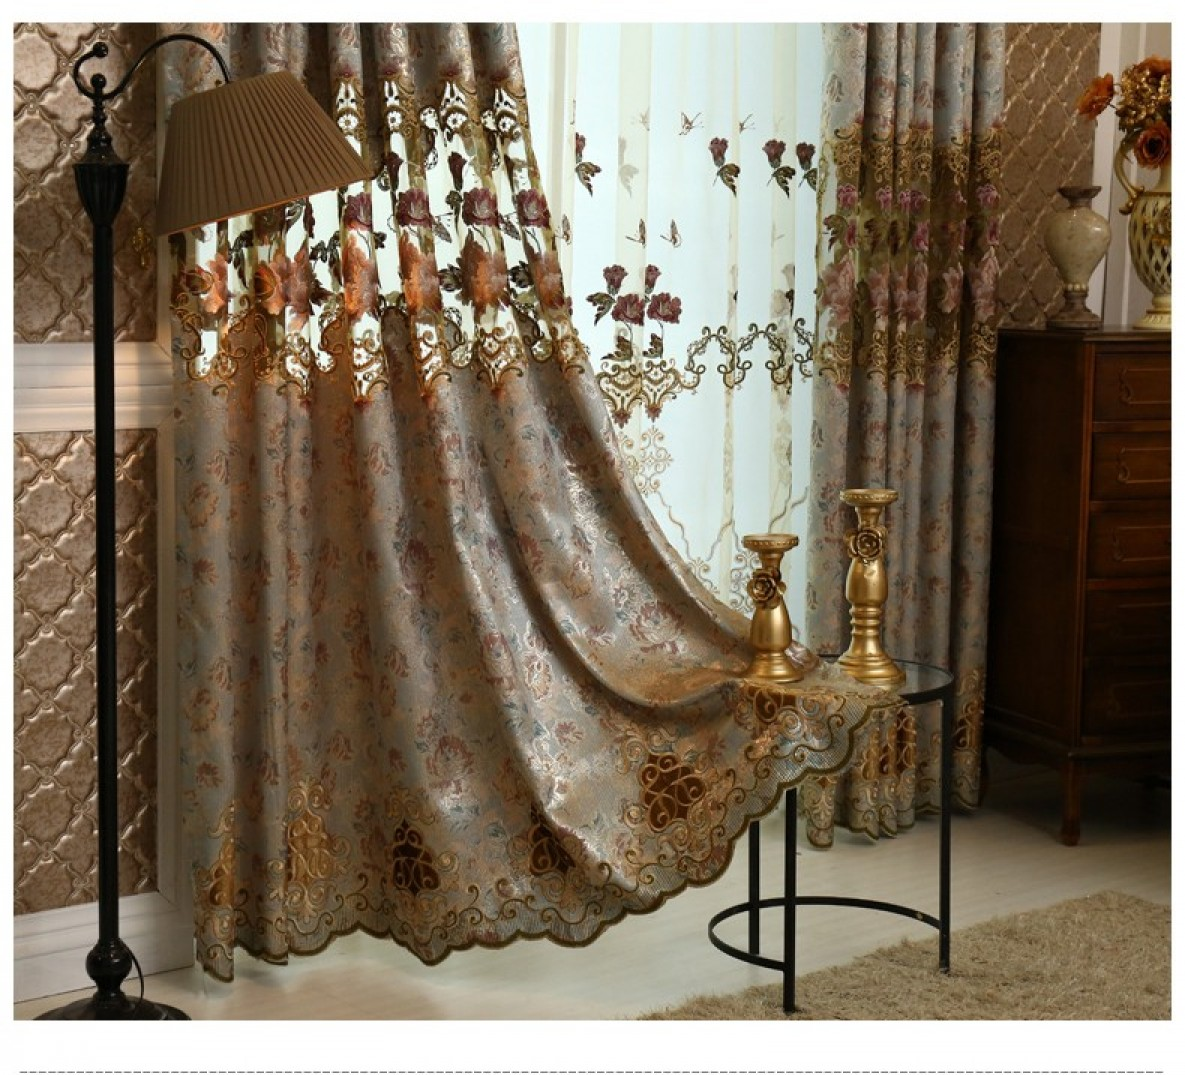 Luxury Interior Home Decorating Ideas with Embroidered Curtains: Mustard Curtain Panels | Embroidered Curtains | Flowered Curtains